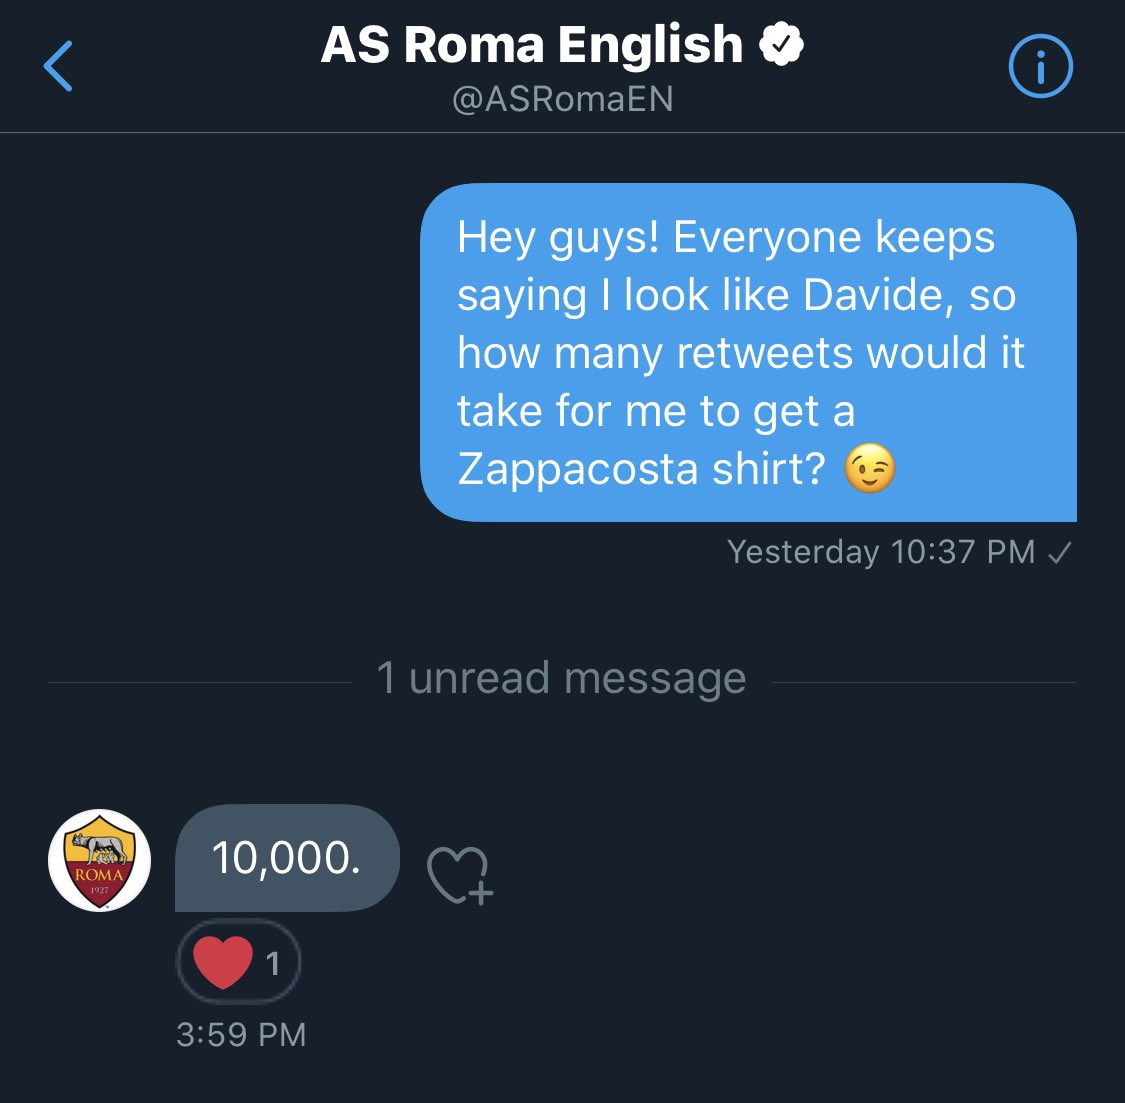 10,000 retweets and I get a Zappacosta shirt from @ASRomaEN! Please help out guys! 🙏🏻